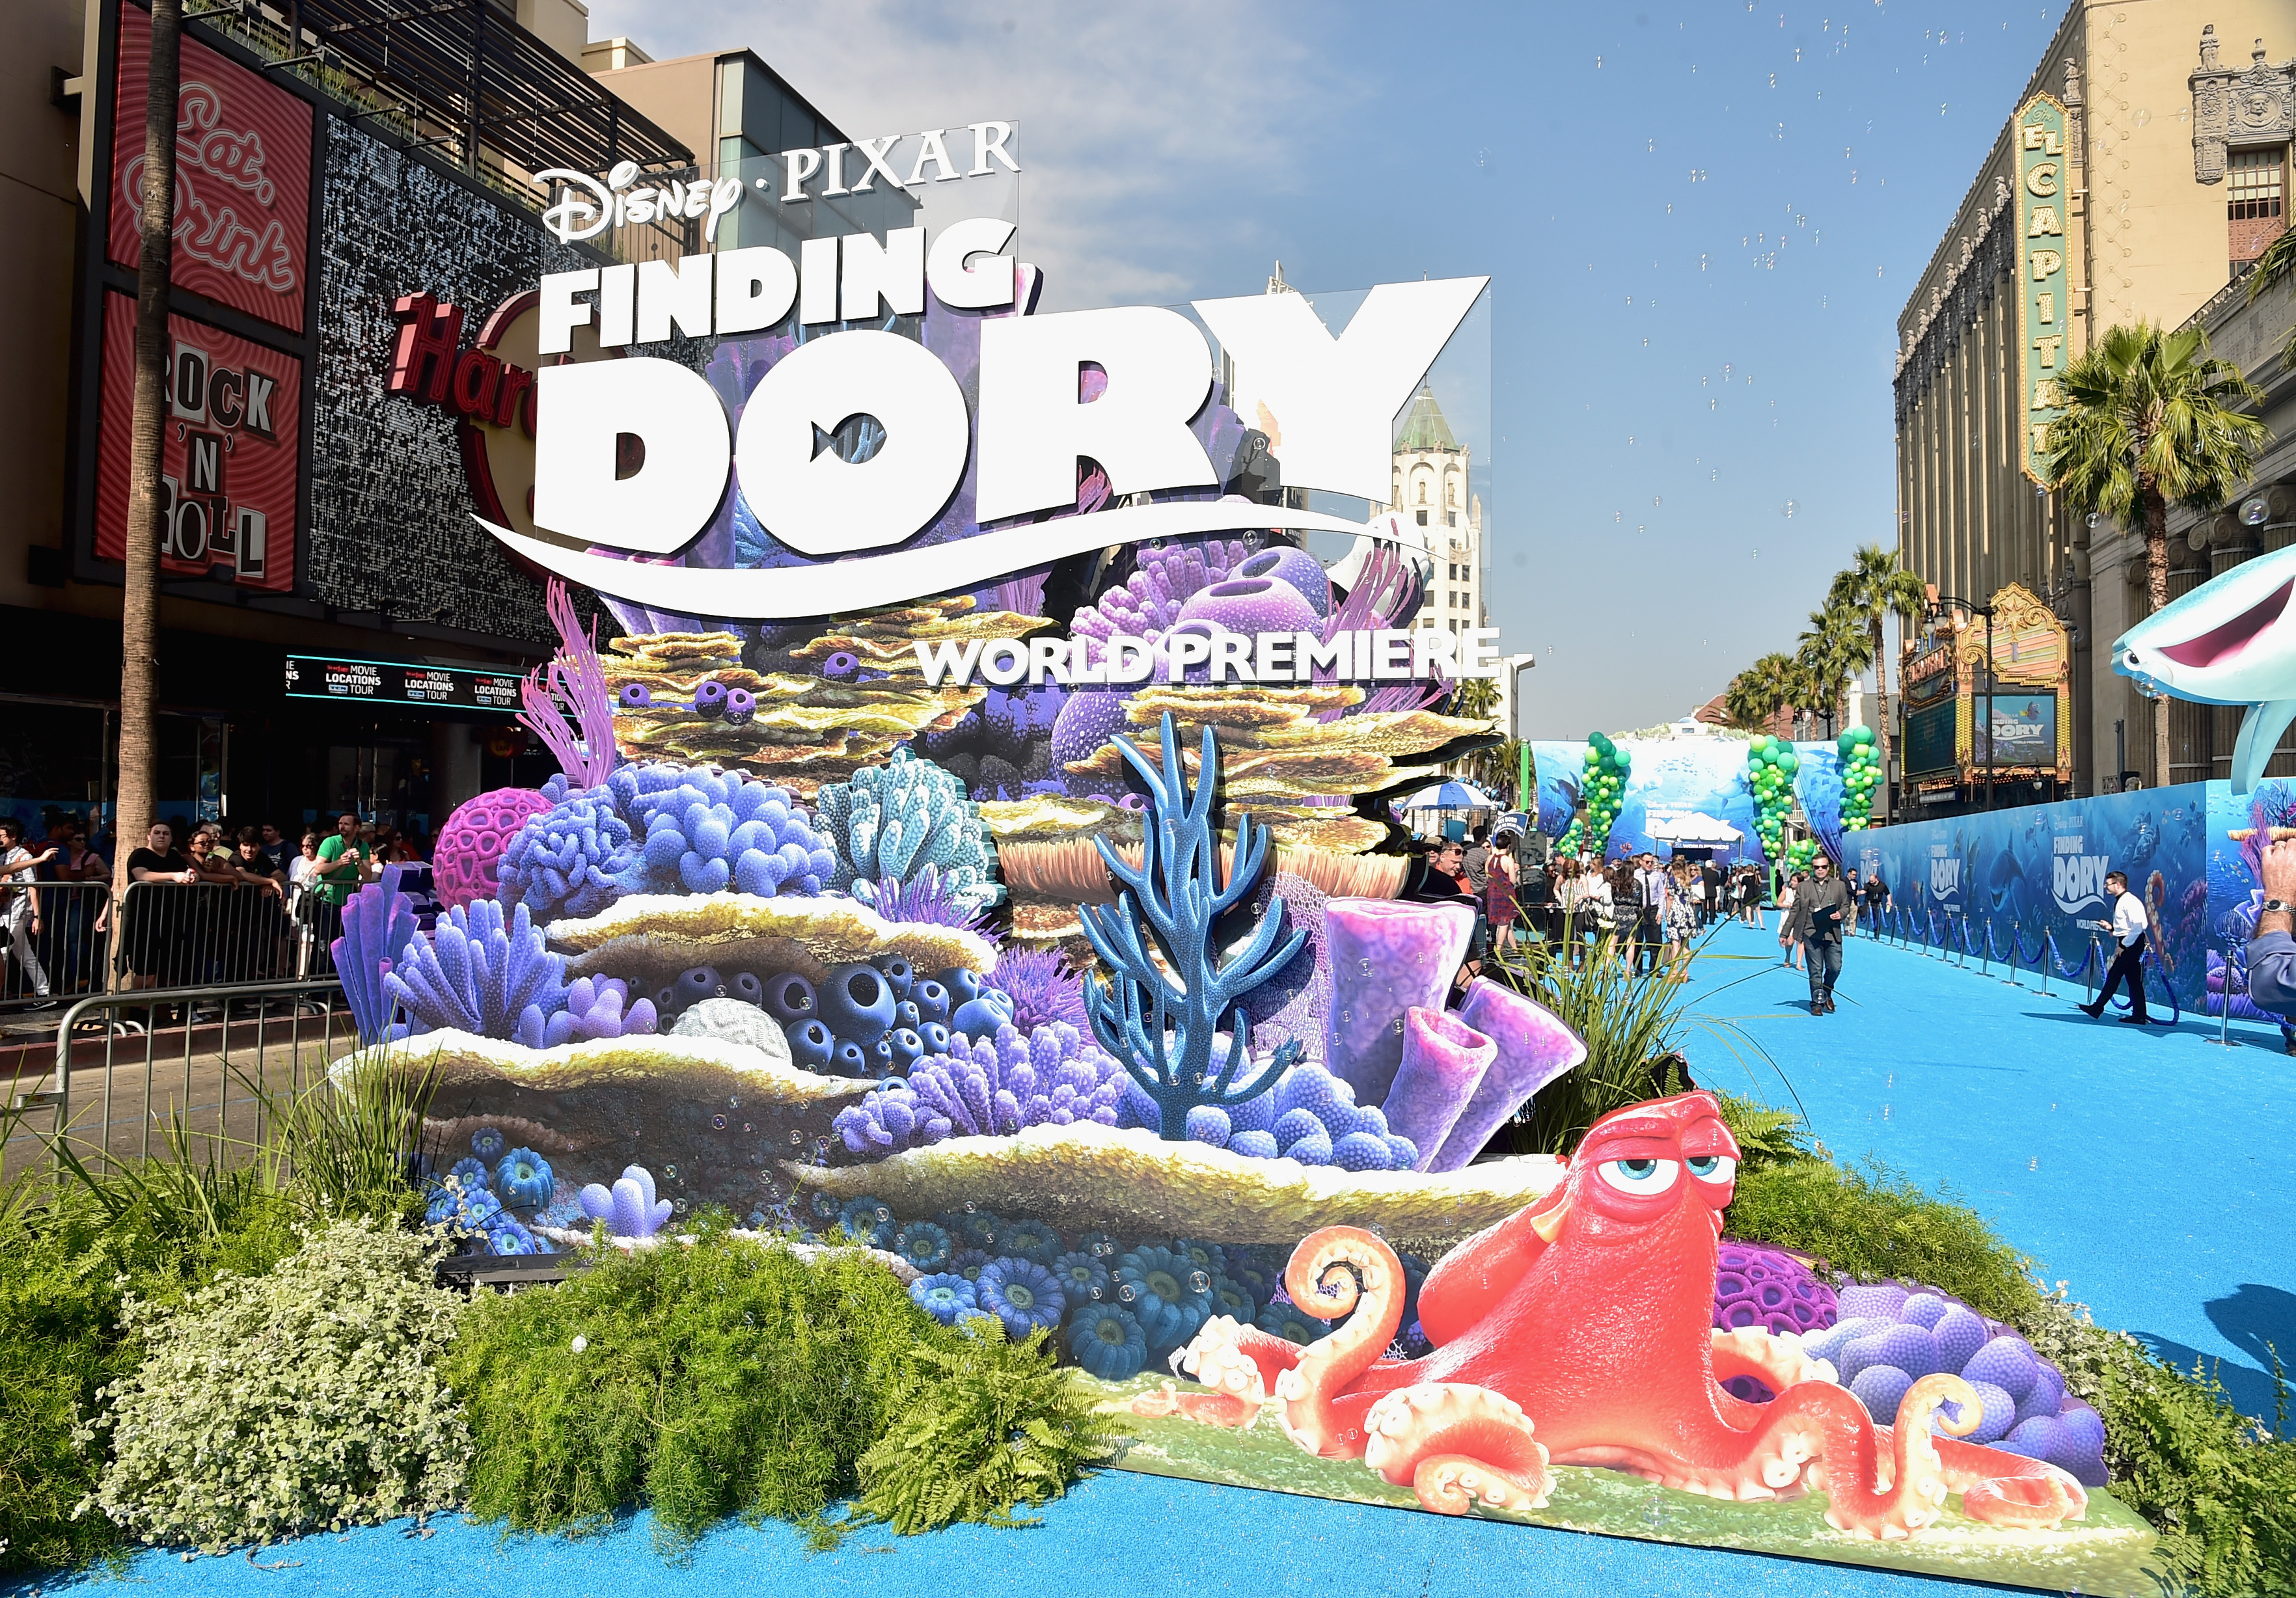 """The """"Finding Dory"""" premiere was basically our dream childhood birthday party"""